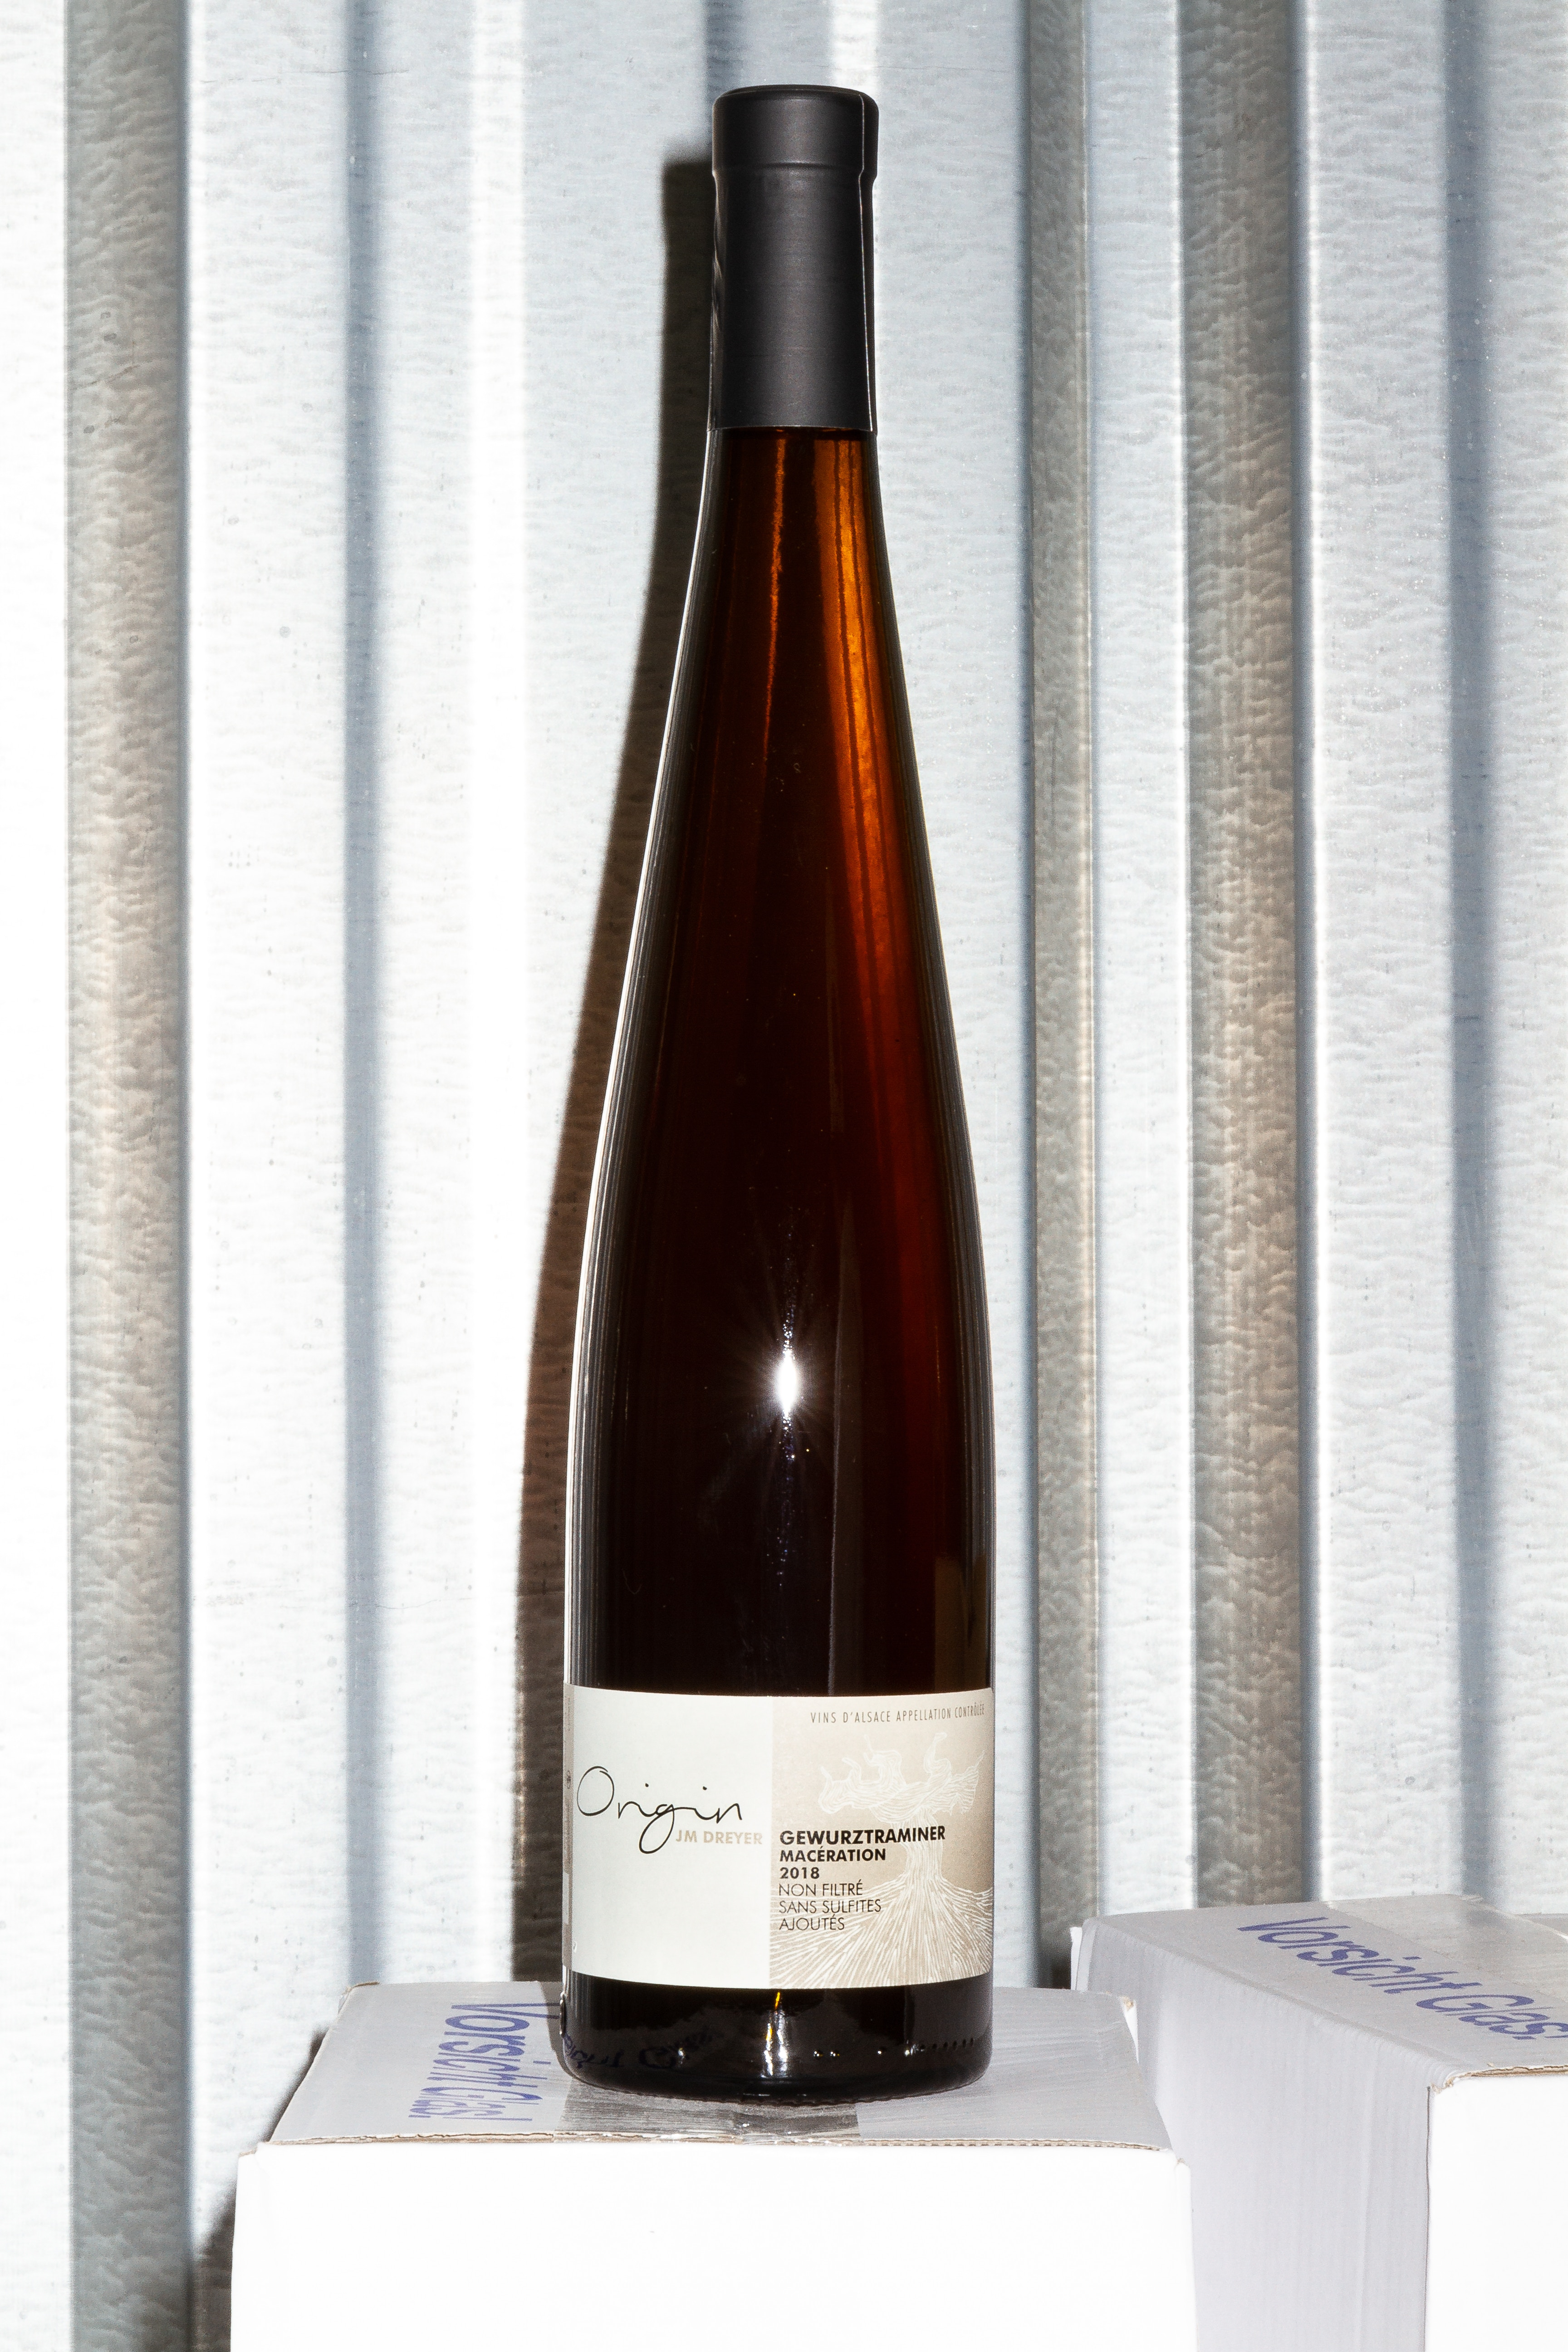 Gewurztraminer Origin 2018 by JM Dreyer